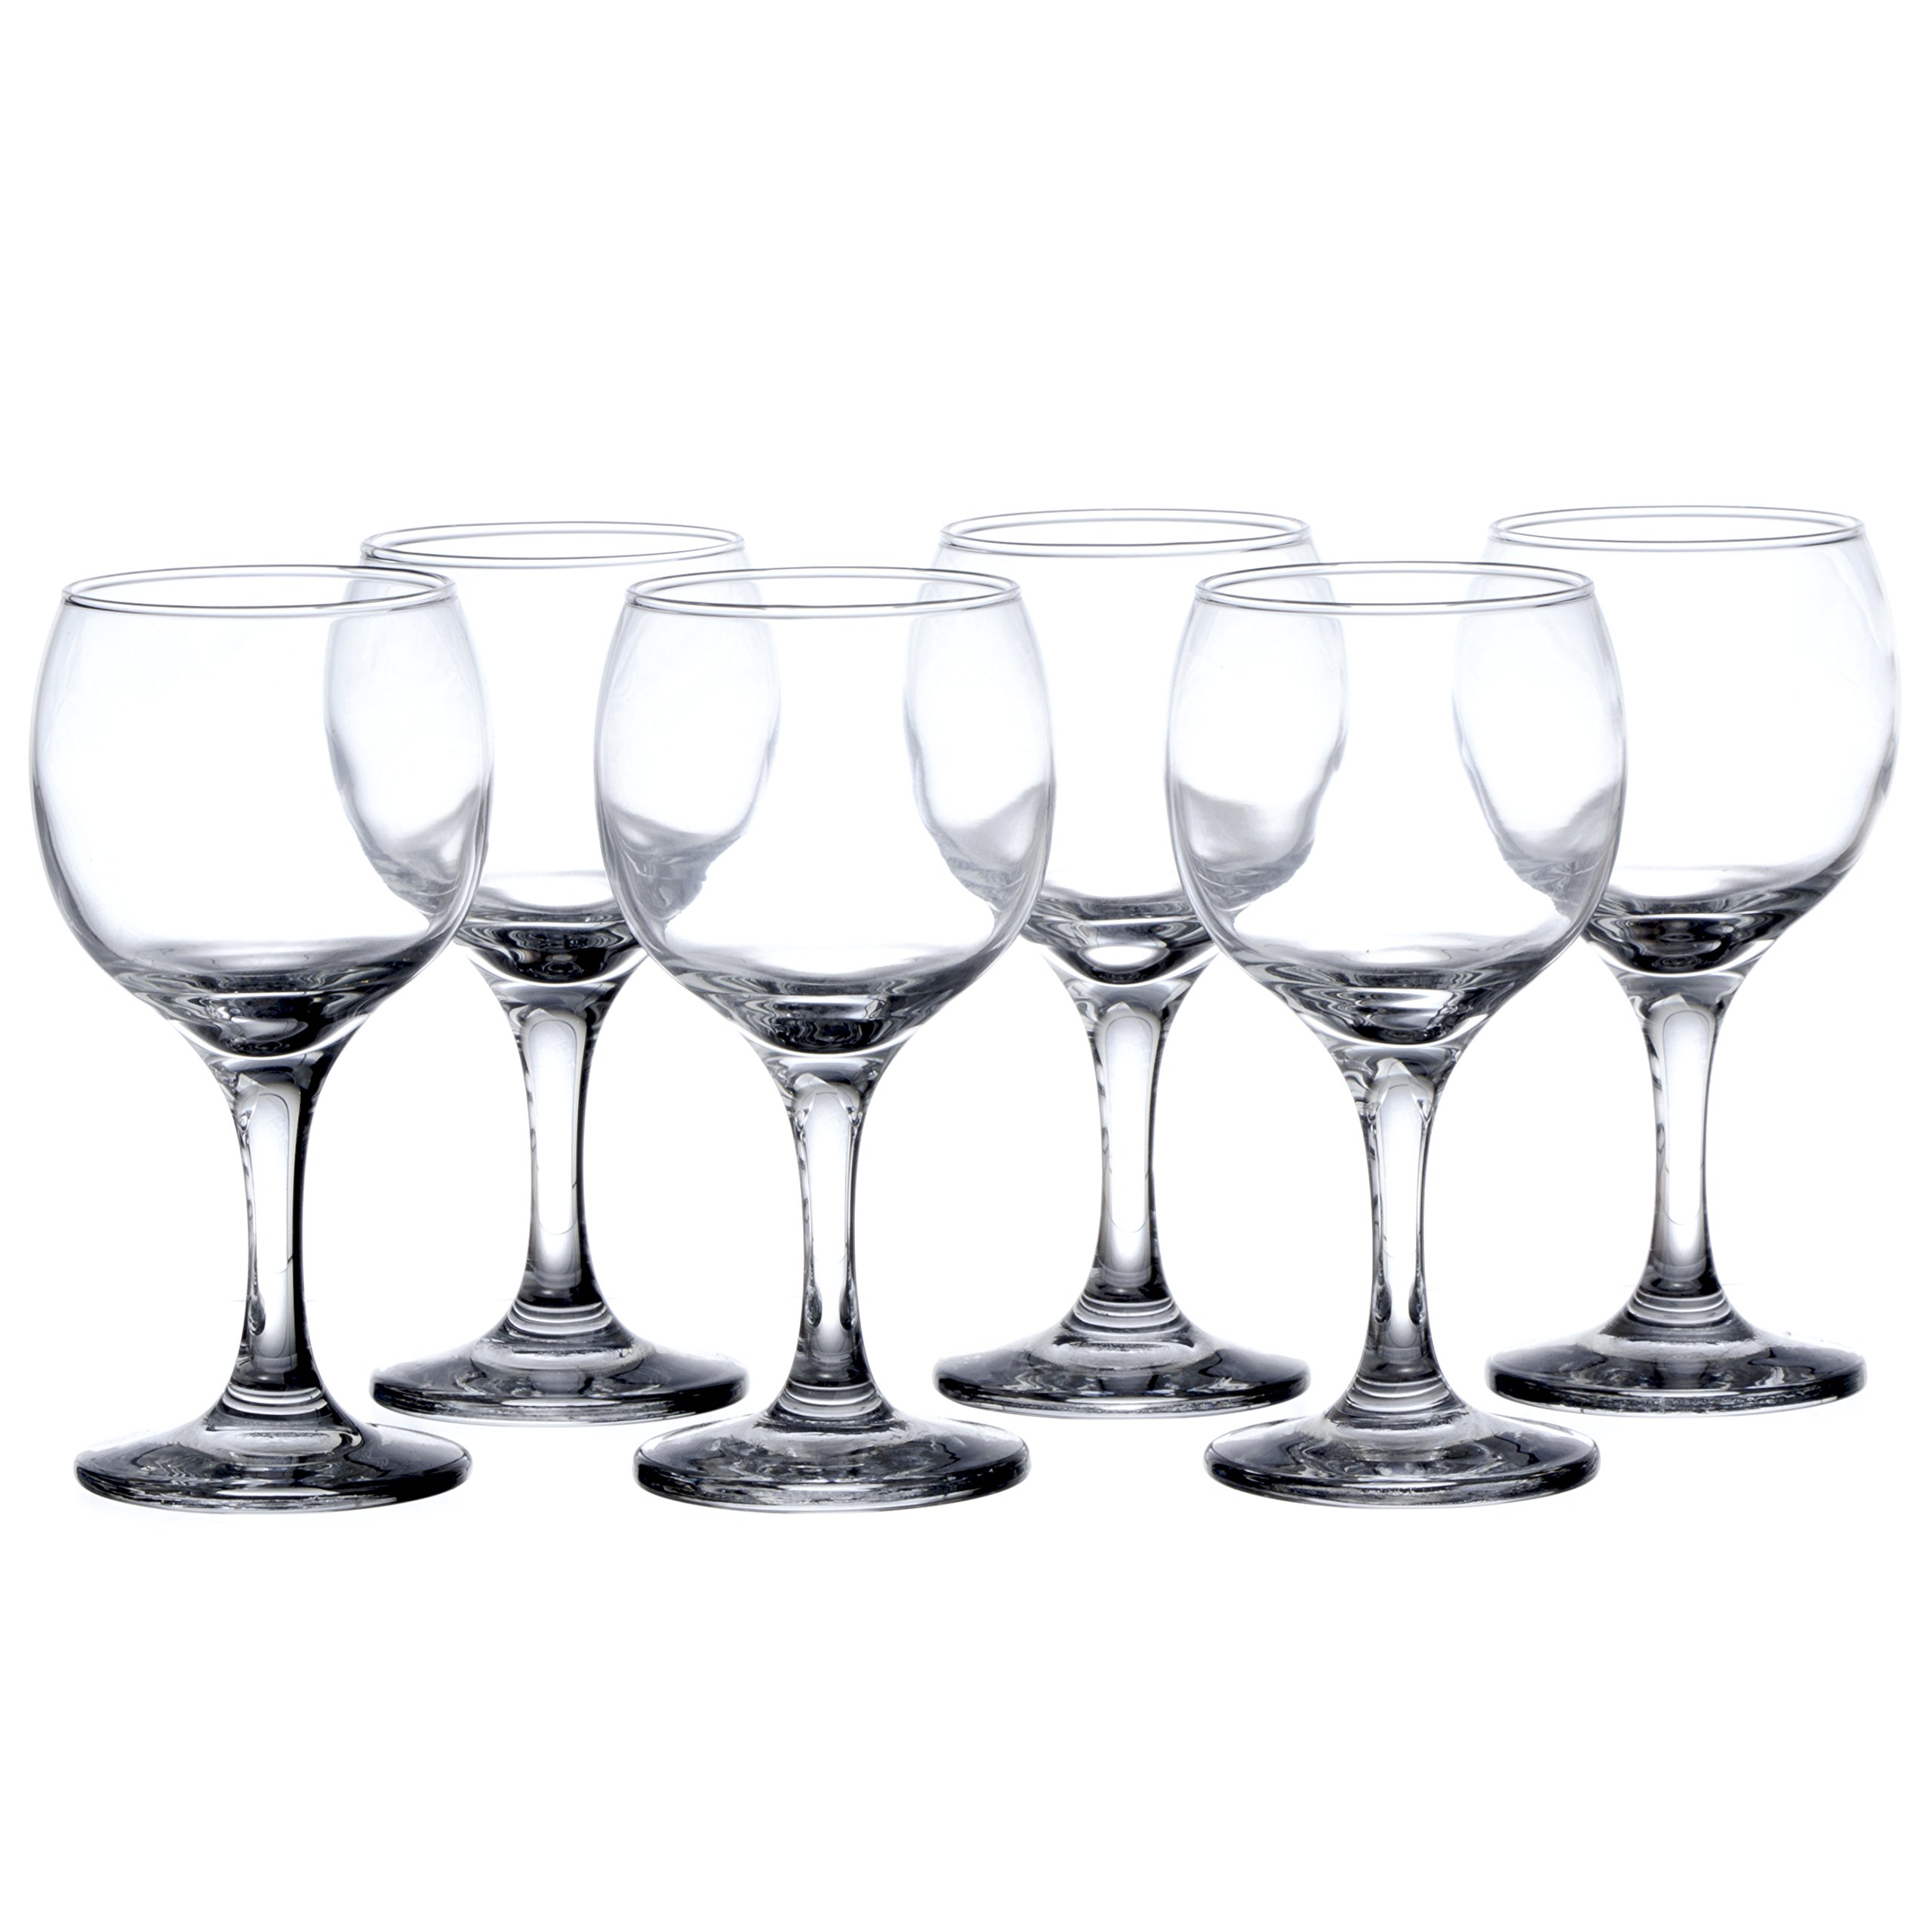 BISTRO 12-piece Wine Glasses Set (in 3 size), White, Red and Liquor Wine, Restaurant&Bar Quality, Durable Tempered Glass, Heavy Base, t.m. Pasabache (7 1/2 oz) by Pasabache (Image #3)